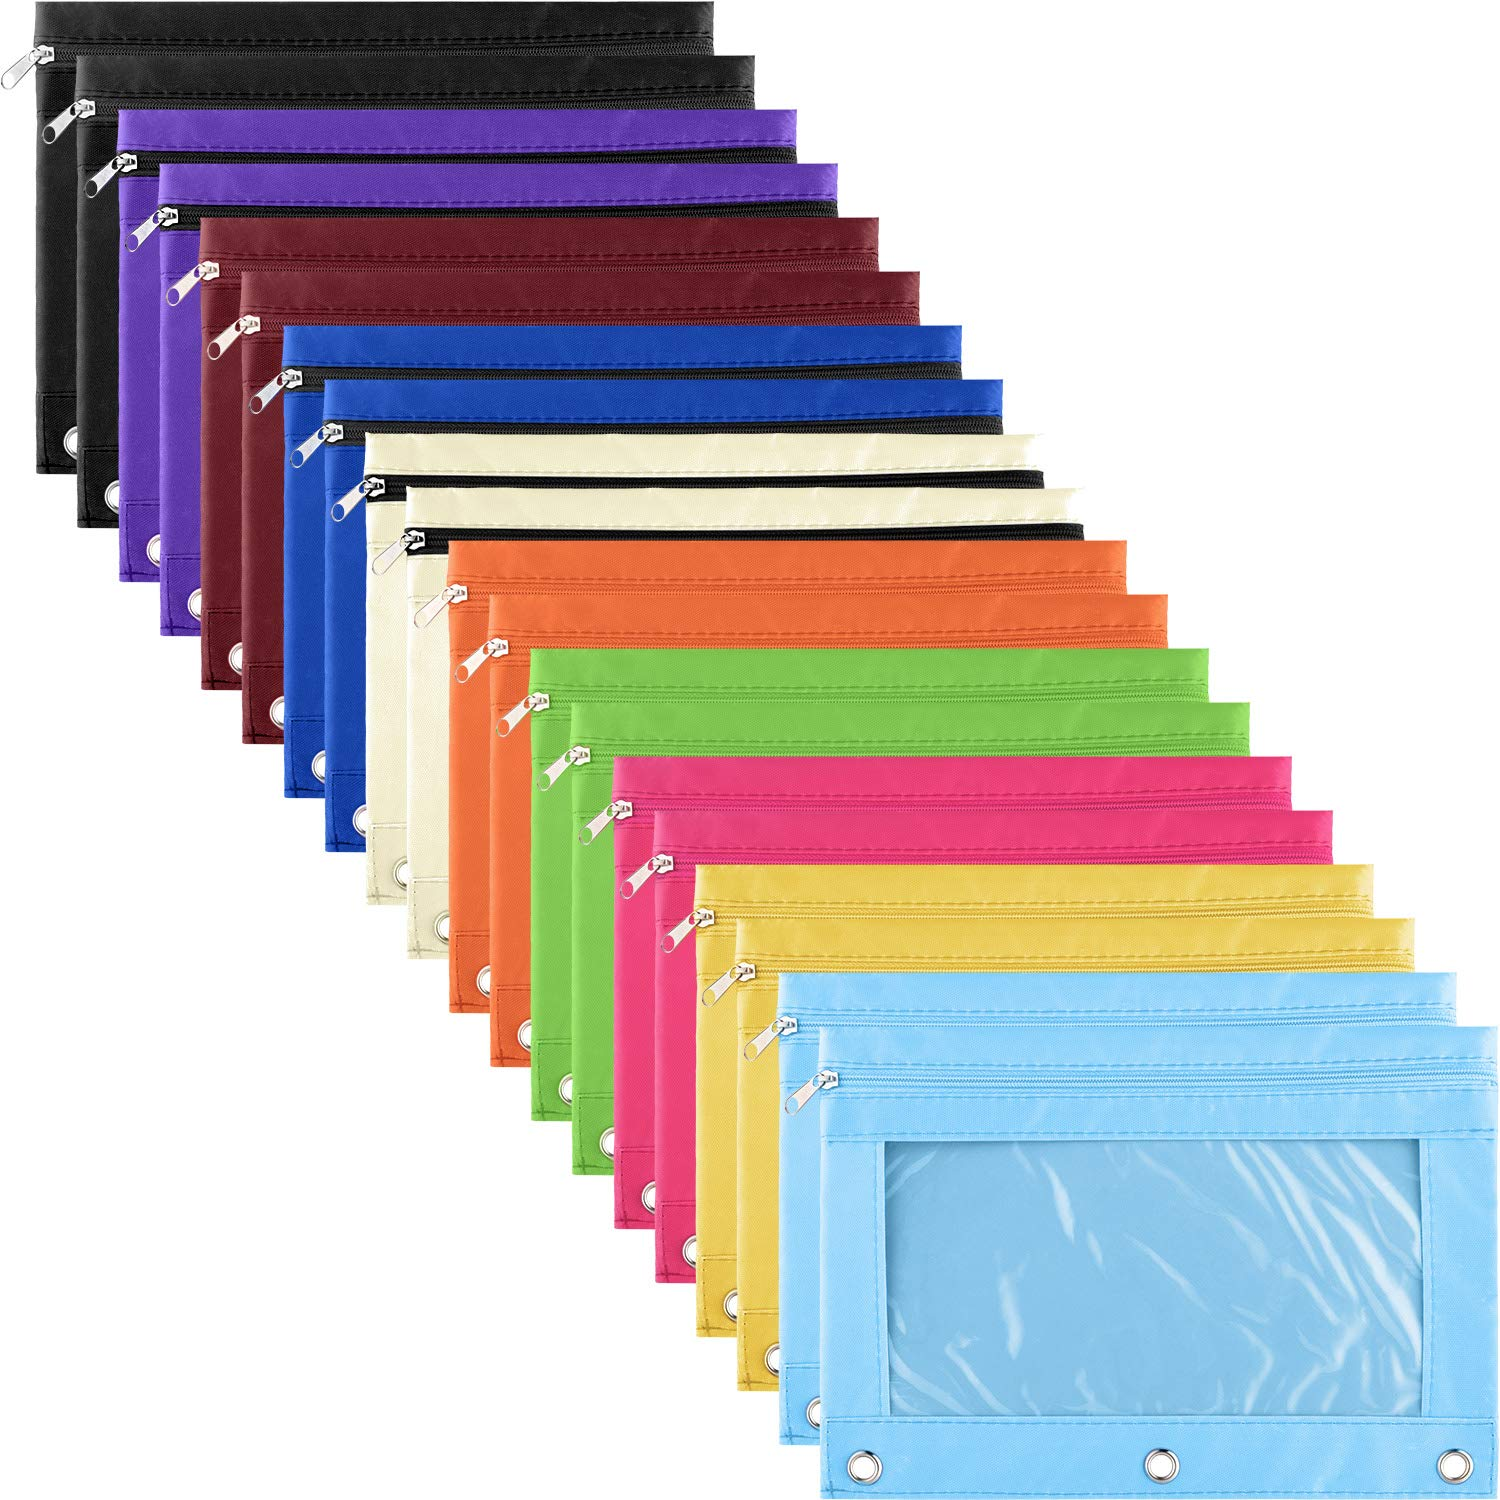 Binder Pencil Pouch 3 Rings Pencil Bags Stationery Bag with Zipper and Clear Window for Office Supplies (10 Colors, 20 Pieces) by Boao